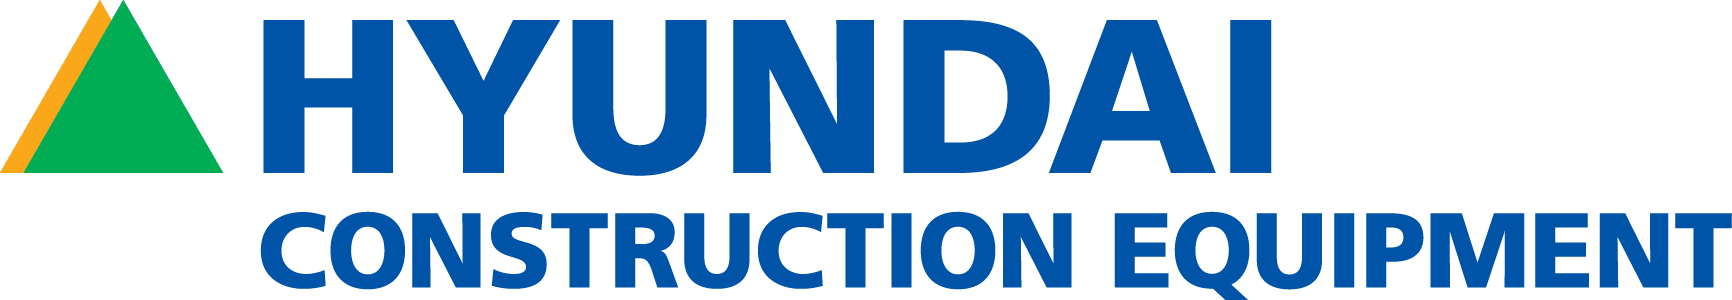 Hyundai Construction Equipment Logo